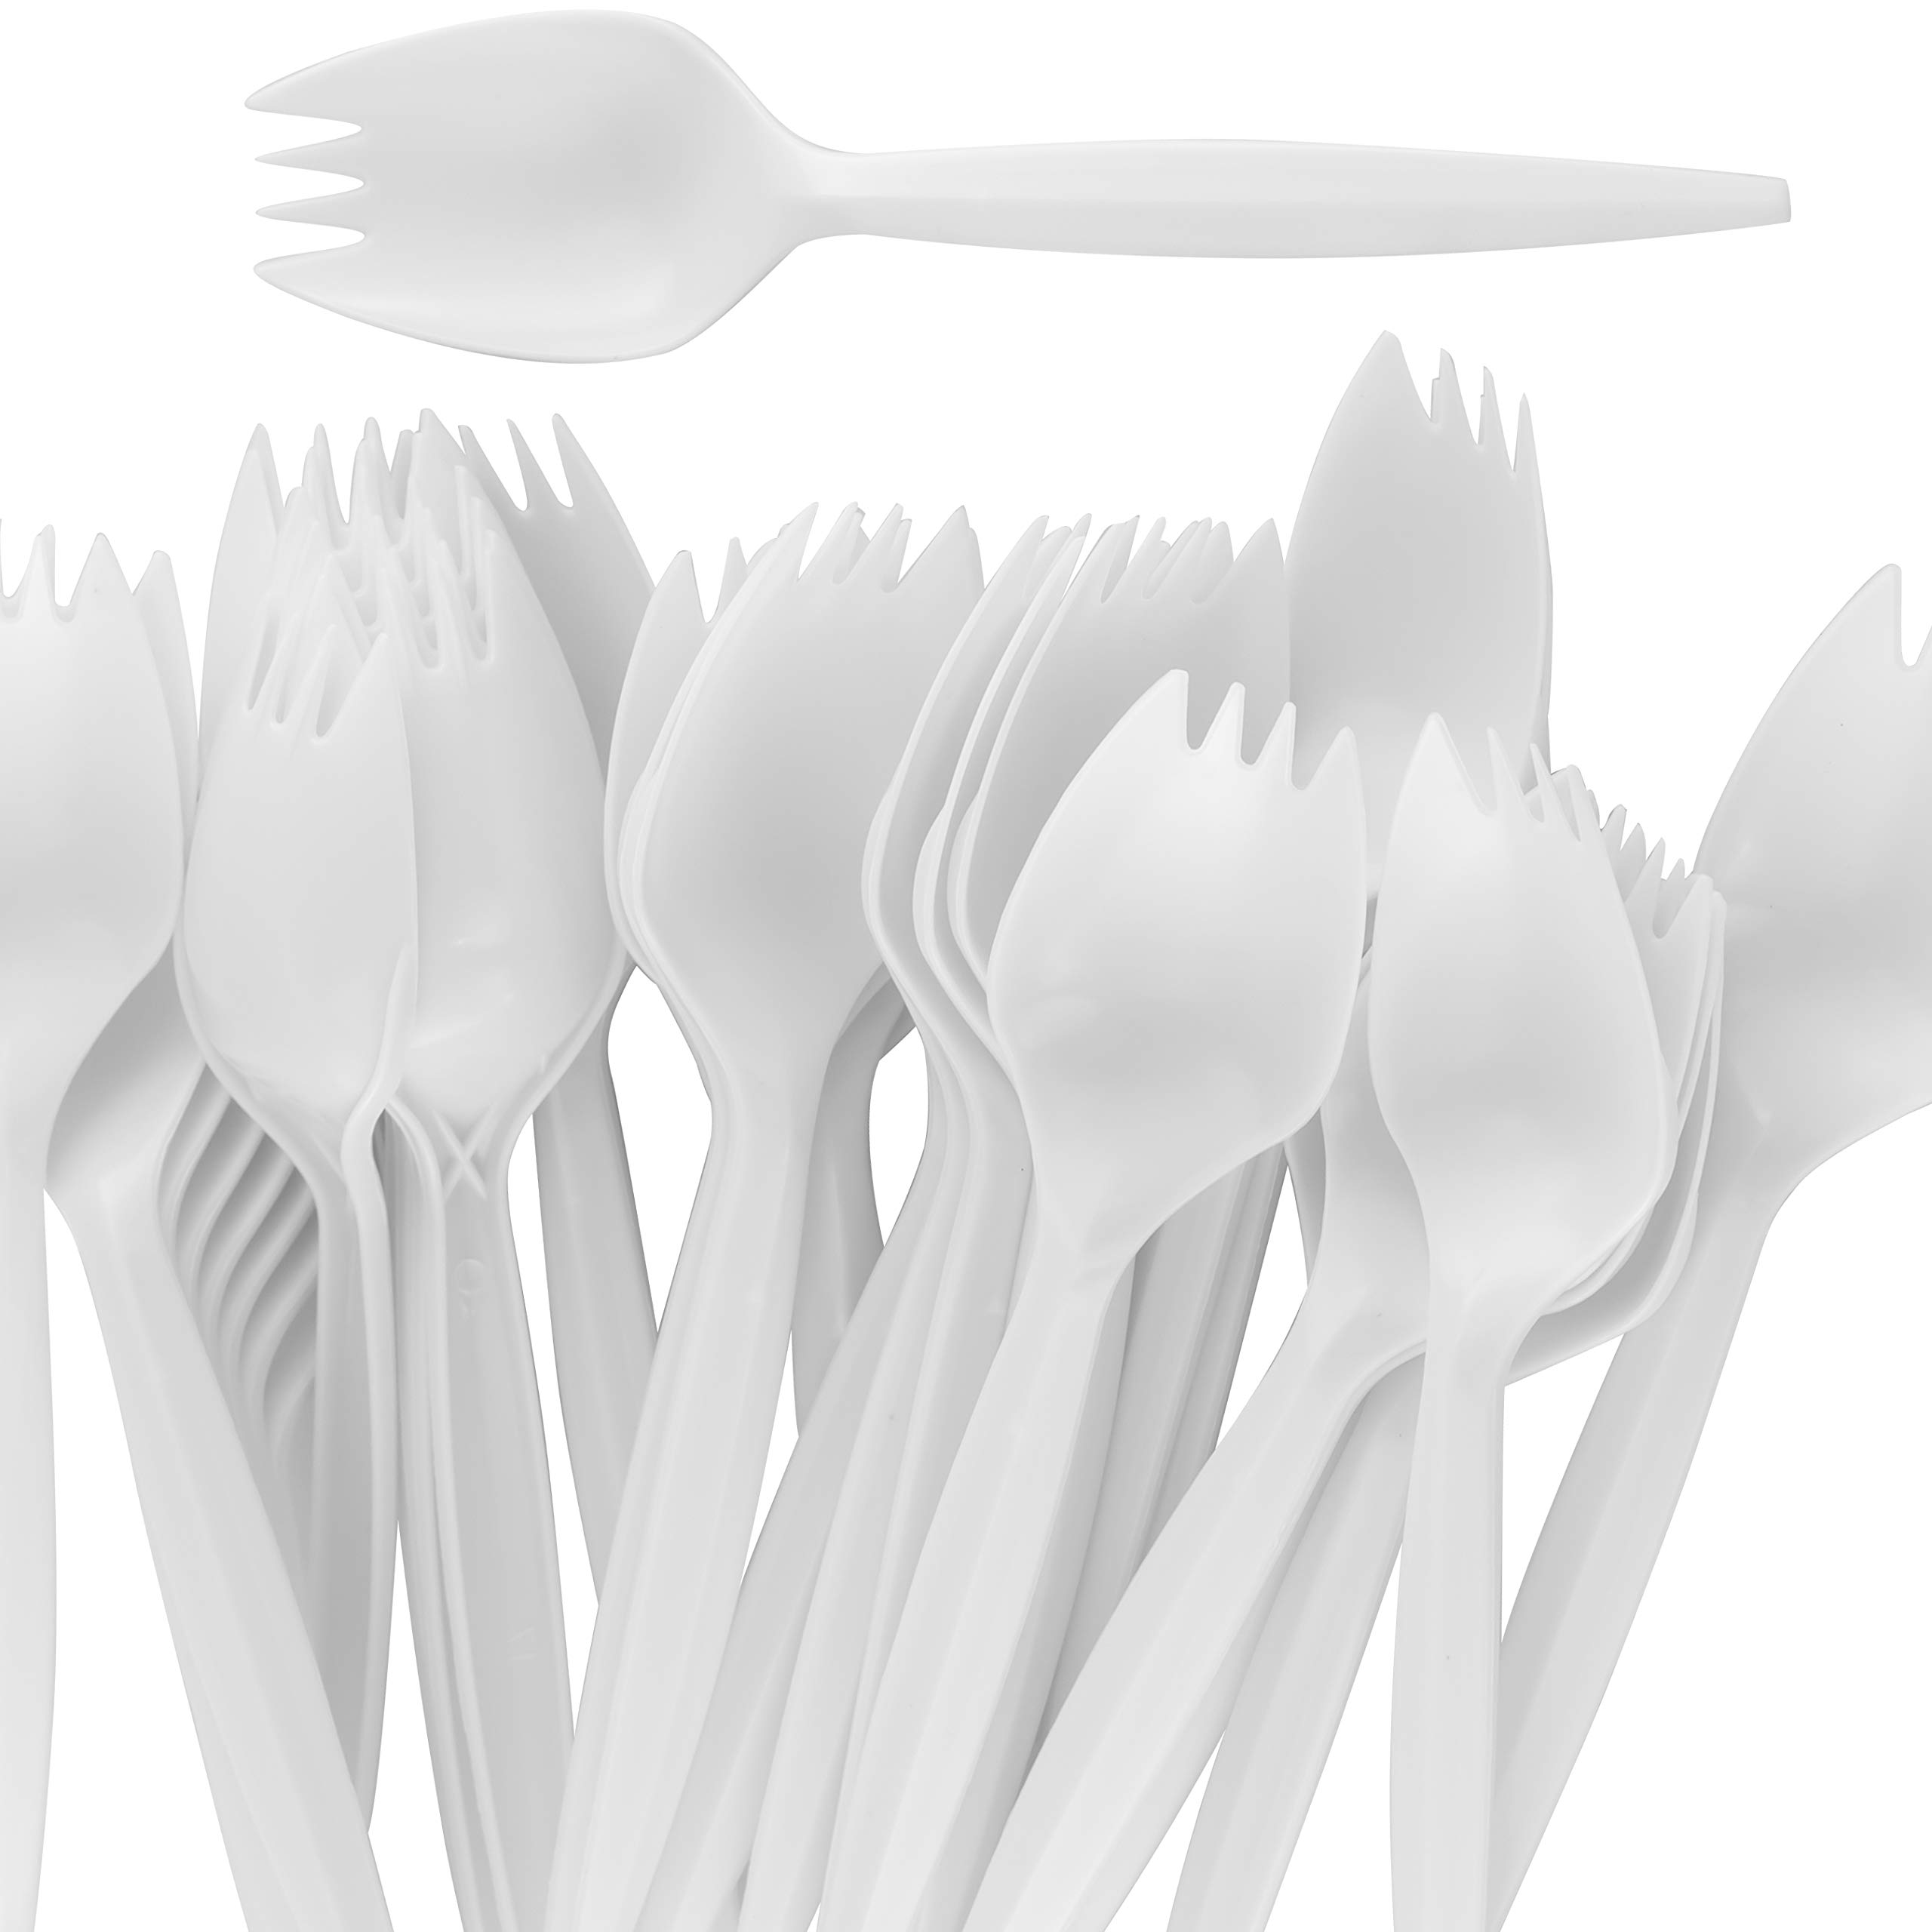 BPA-Free White Disposable Sporks 250 Pk. Recyclable, Eco-Friendly and Kid-Safe 2-in-1 Utensils Built Strong to Last Large Meals. Great for School Lunch, Picnics or Restaurant and Party Supply by Avant Grub